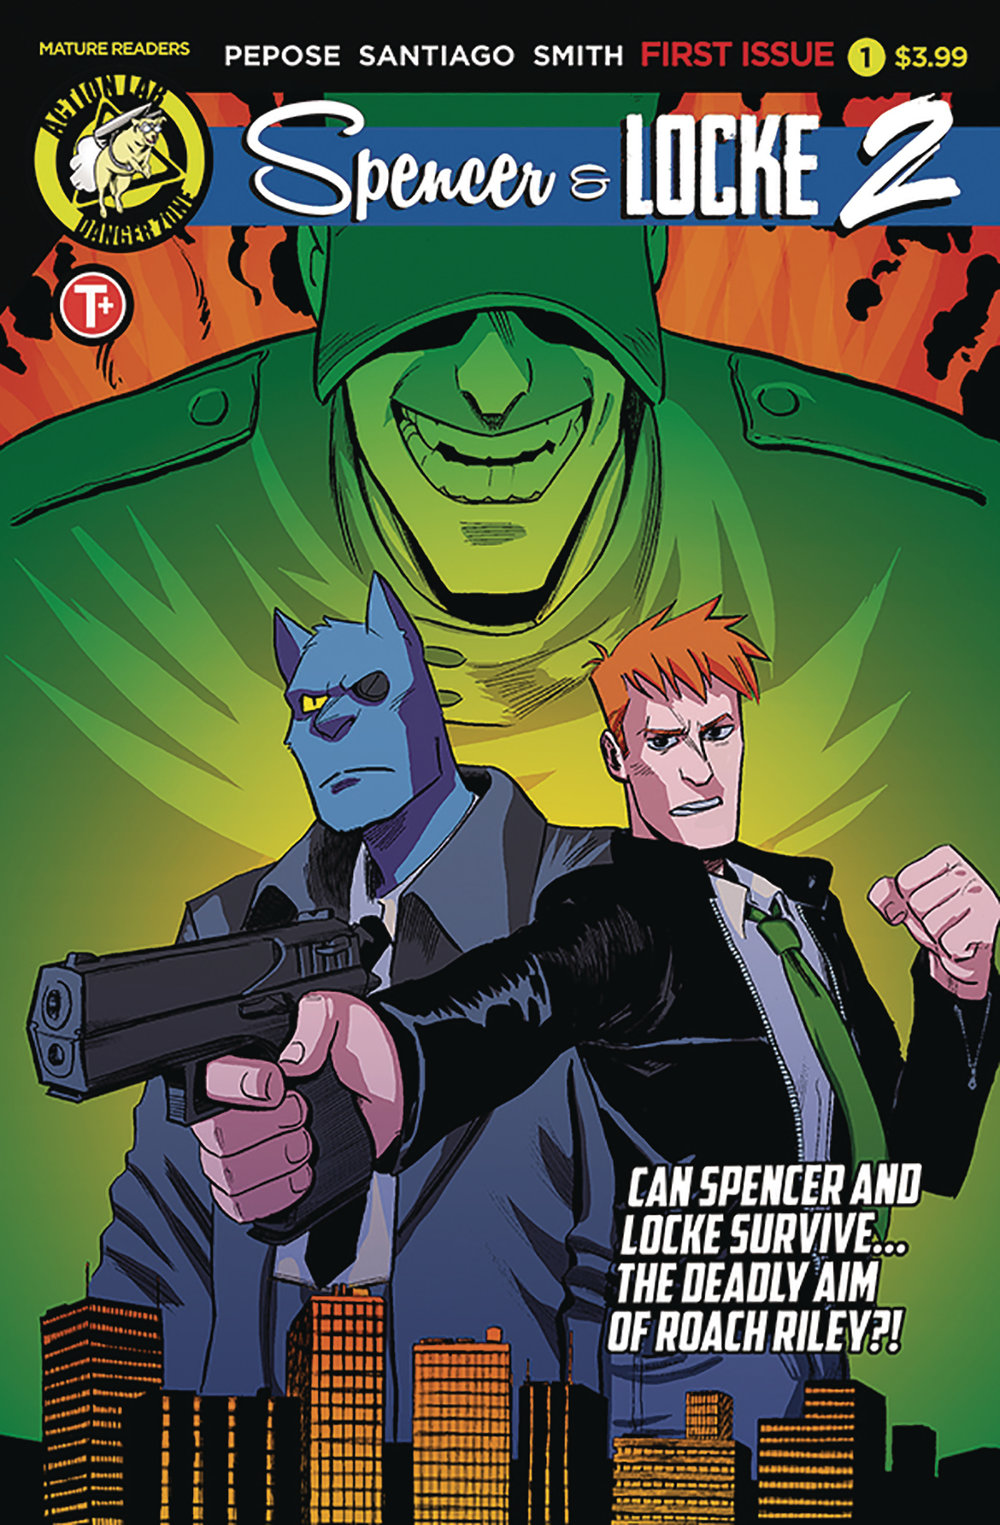 Spencer & Locke, Vol. 2 #1  is out 4/24/2019.